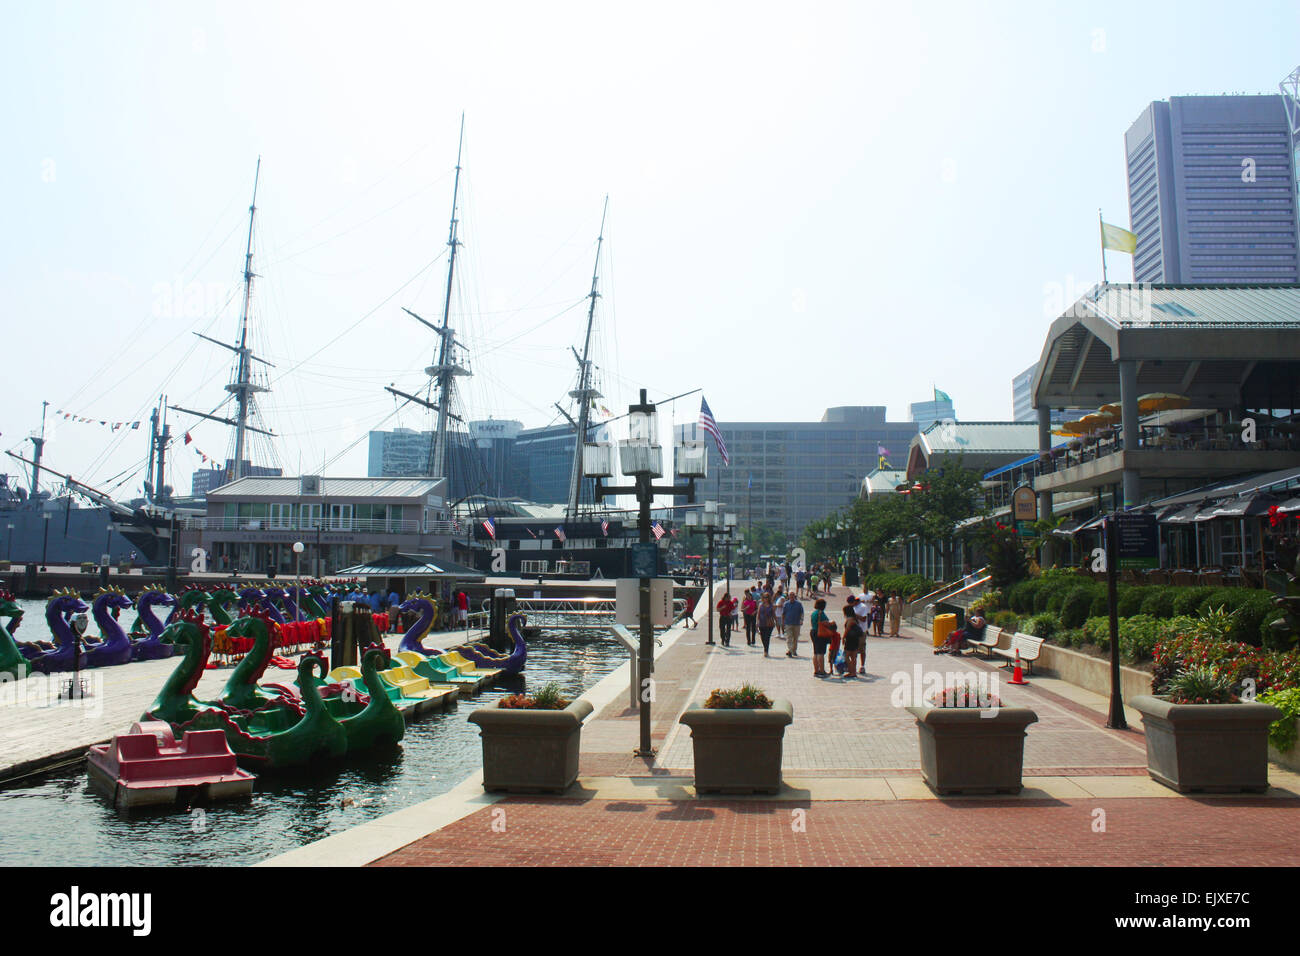 Outside the national aquarium in Baltimore, Maryland, USA - Stock Image